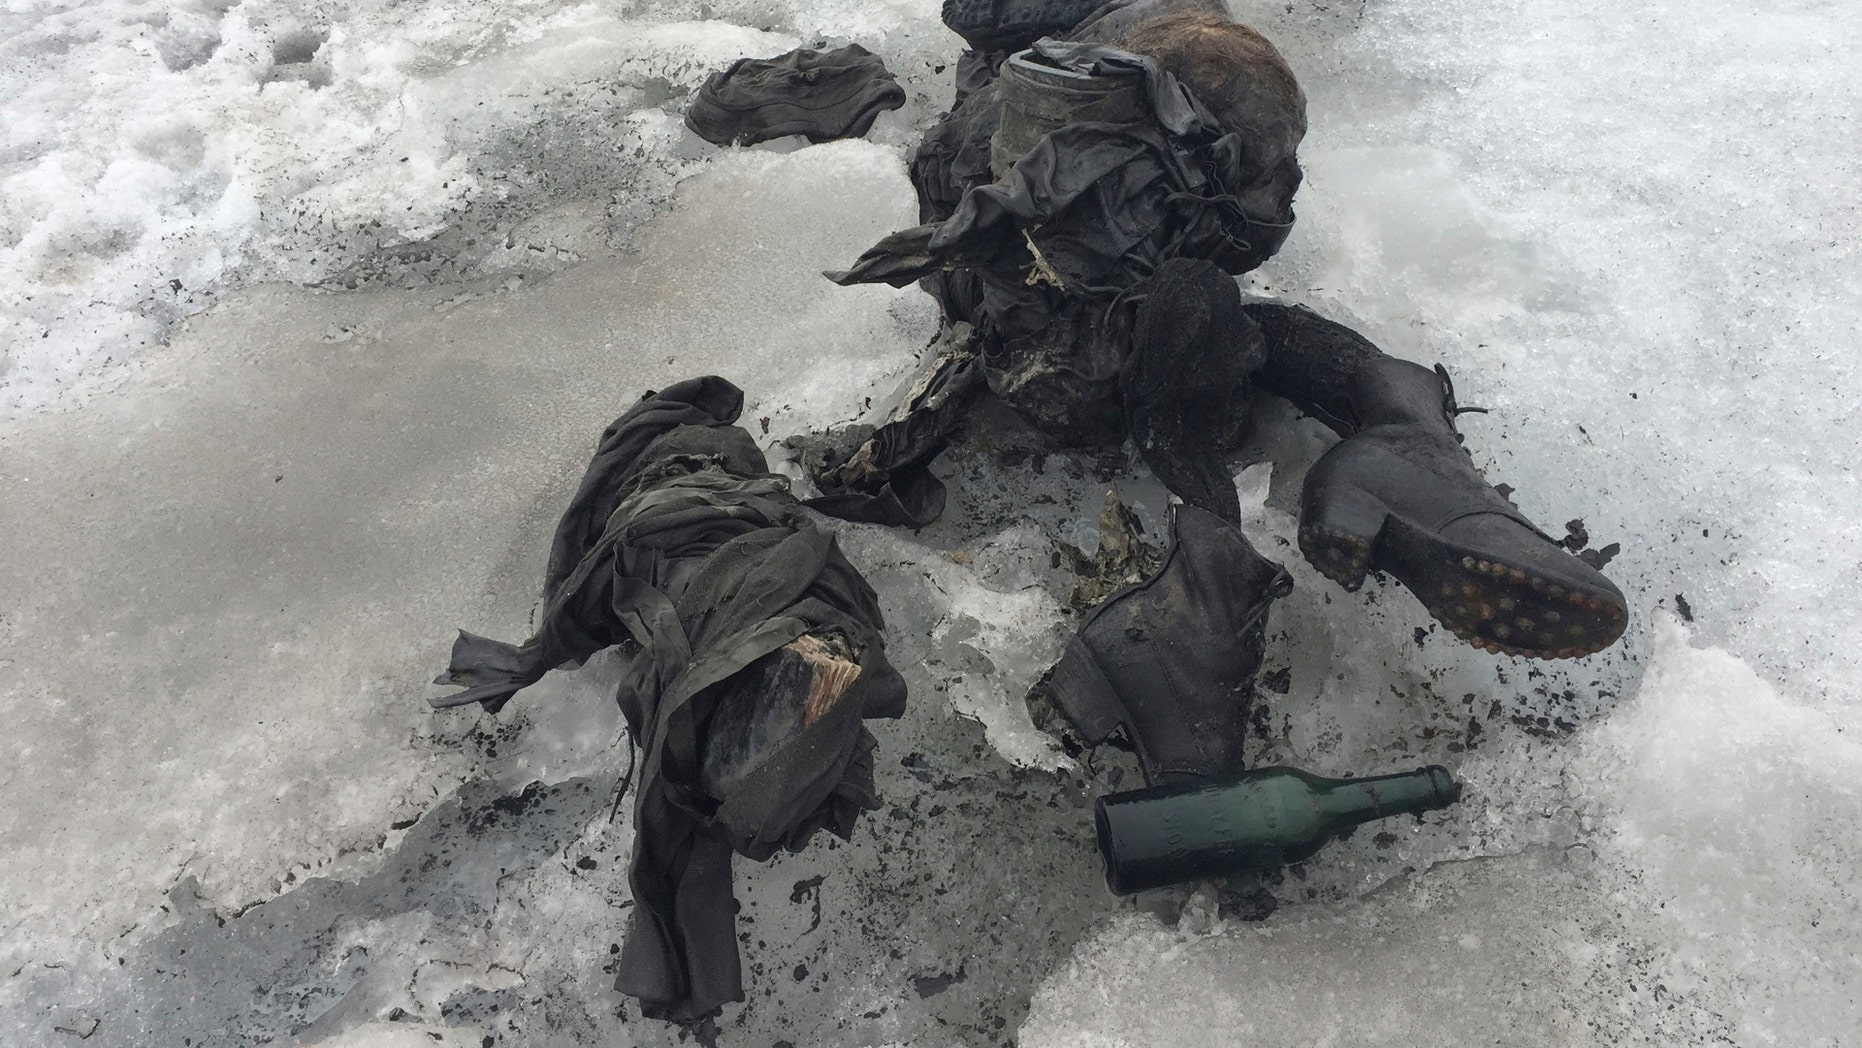 In this photo released by the Swiss train company ' Glacier 3000' shoes and clothing are visible at a Swiss glacier where two bodies were found. Police say the bodies of what appear to be two people killed in an accident decades ago have been recovered from a glacier in southwestern Switzerland. Valais canton police say the bodies were found on the Tsanfleuron glacier Friday July 14, 2017 at an altitude of 8,580 feet. They say the equipment found suggests that they died decades ago, and that formal identification with the help of DNA will take several days. (GLACIER 3000/Keystone via AP)